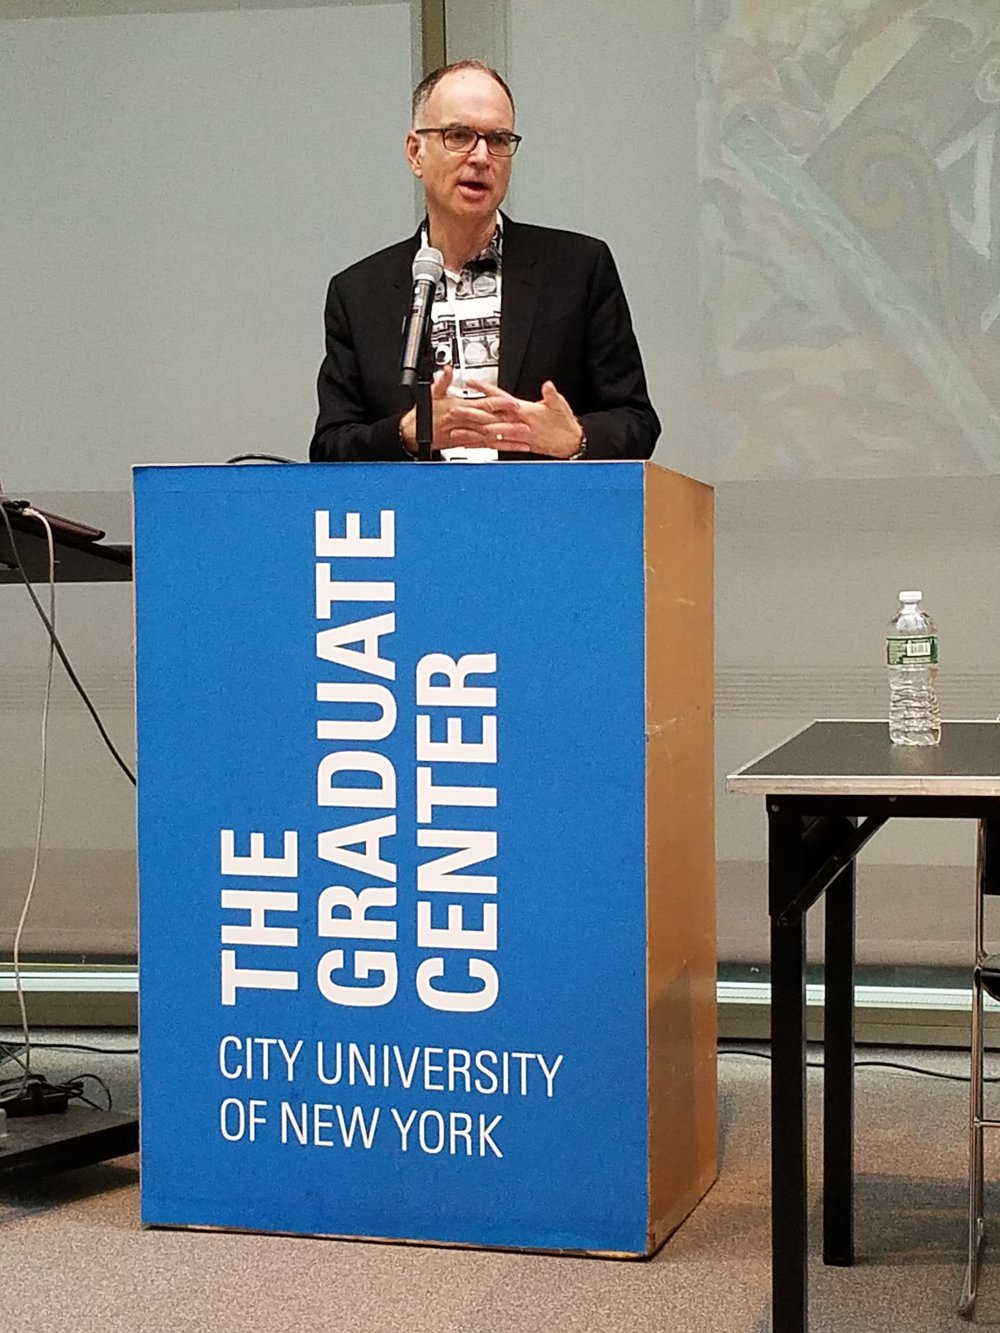 Ken Wissoker, Editorial Director, Duke University Press and Director of Intellectual Publics, The Graduate Center, City University of New York